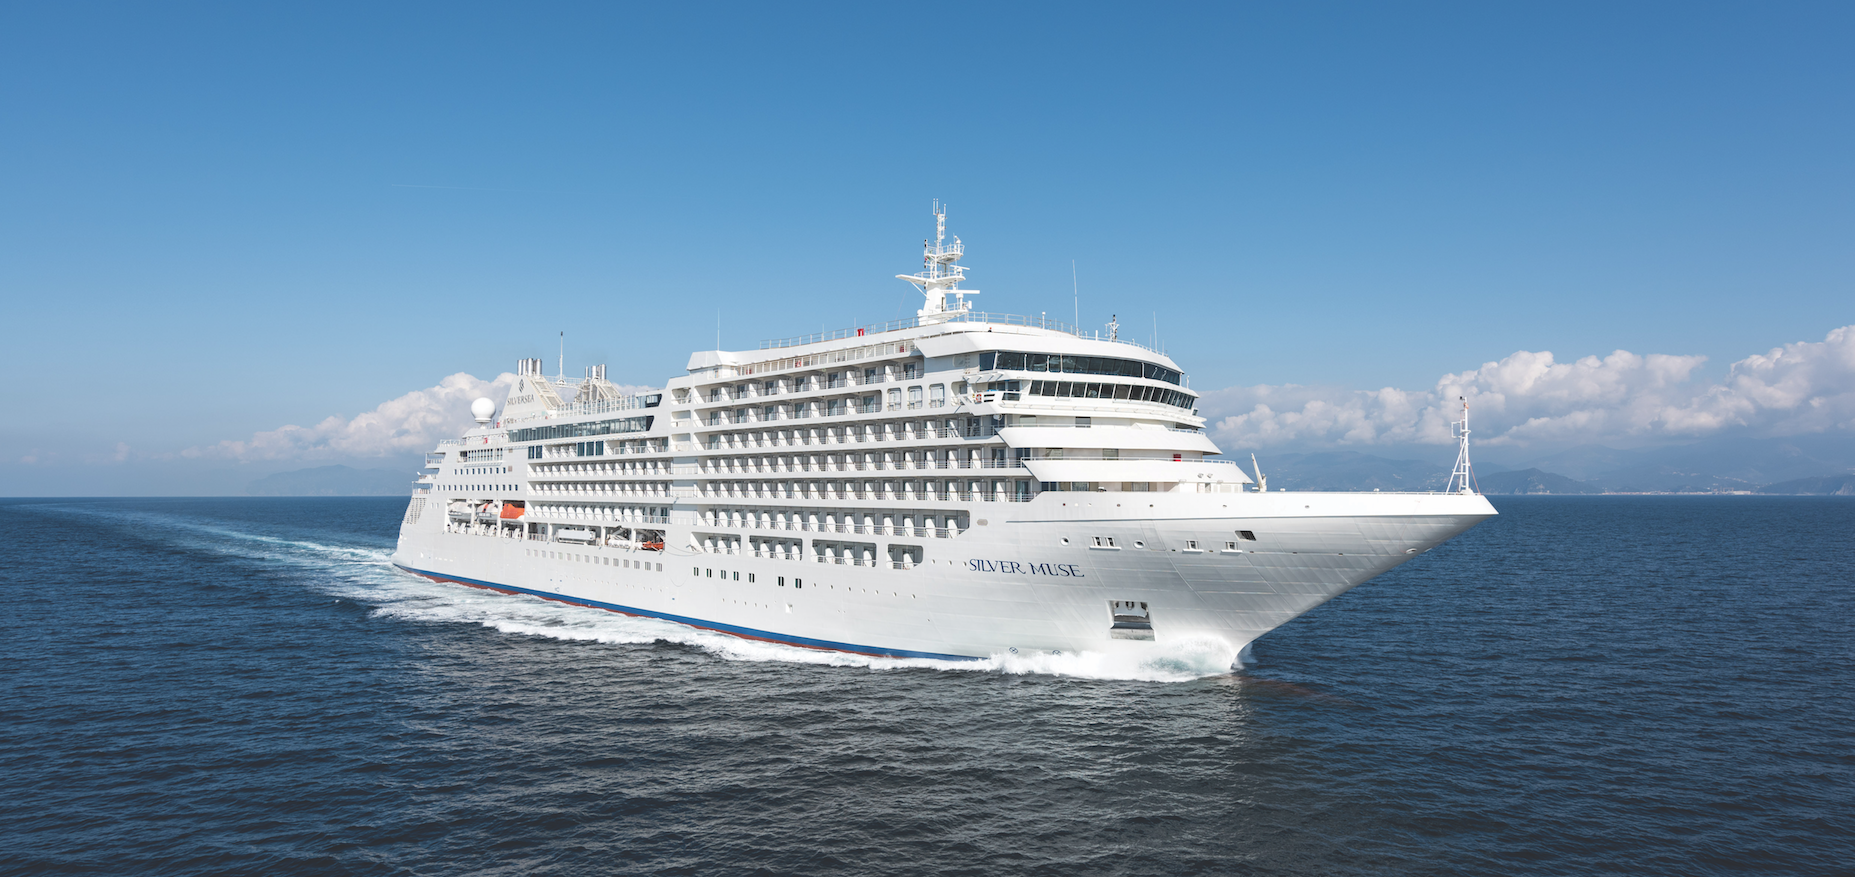 FINAL CALL: Register now for Silversea's webinar to learn what's new + the chance to win big!